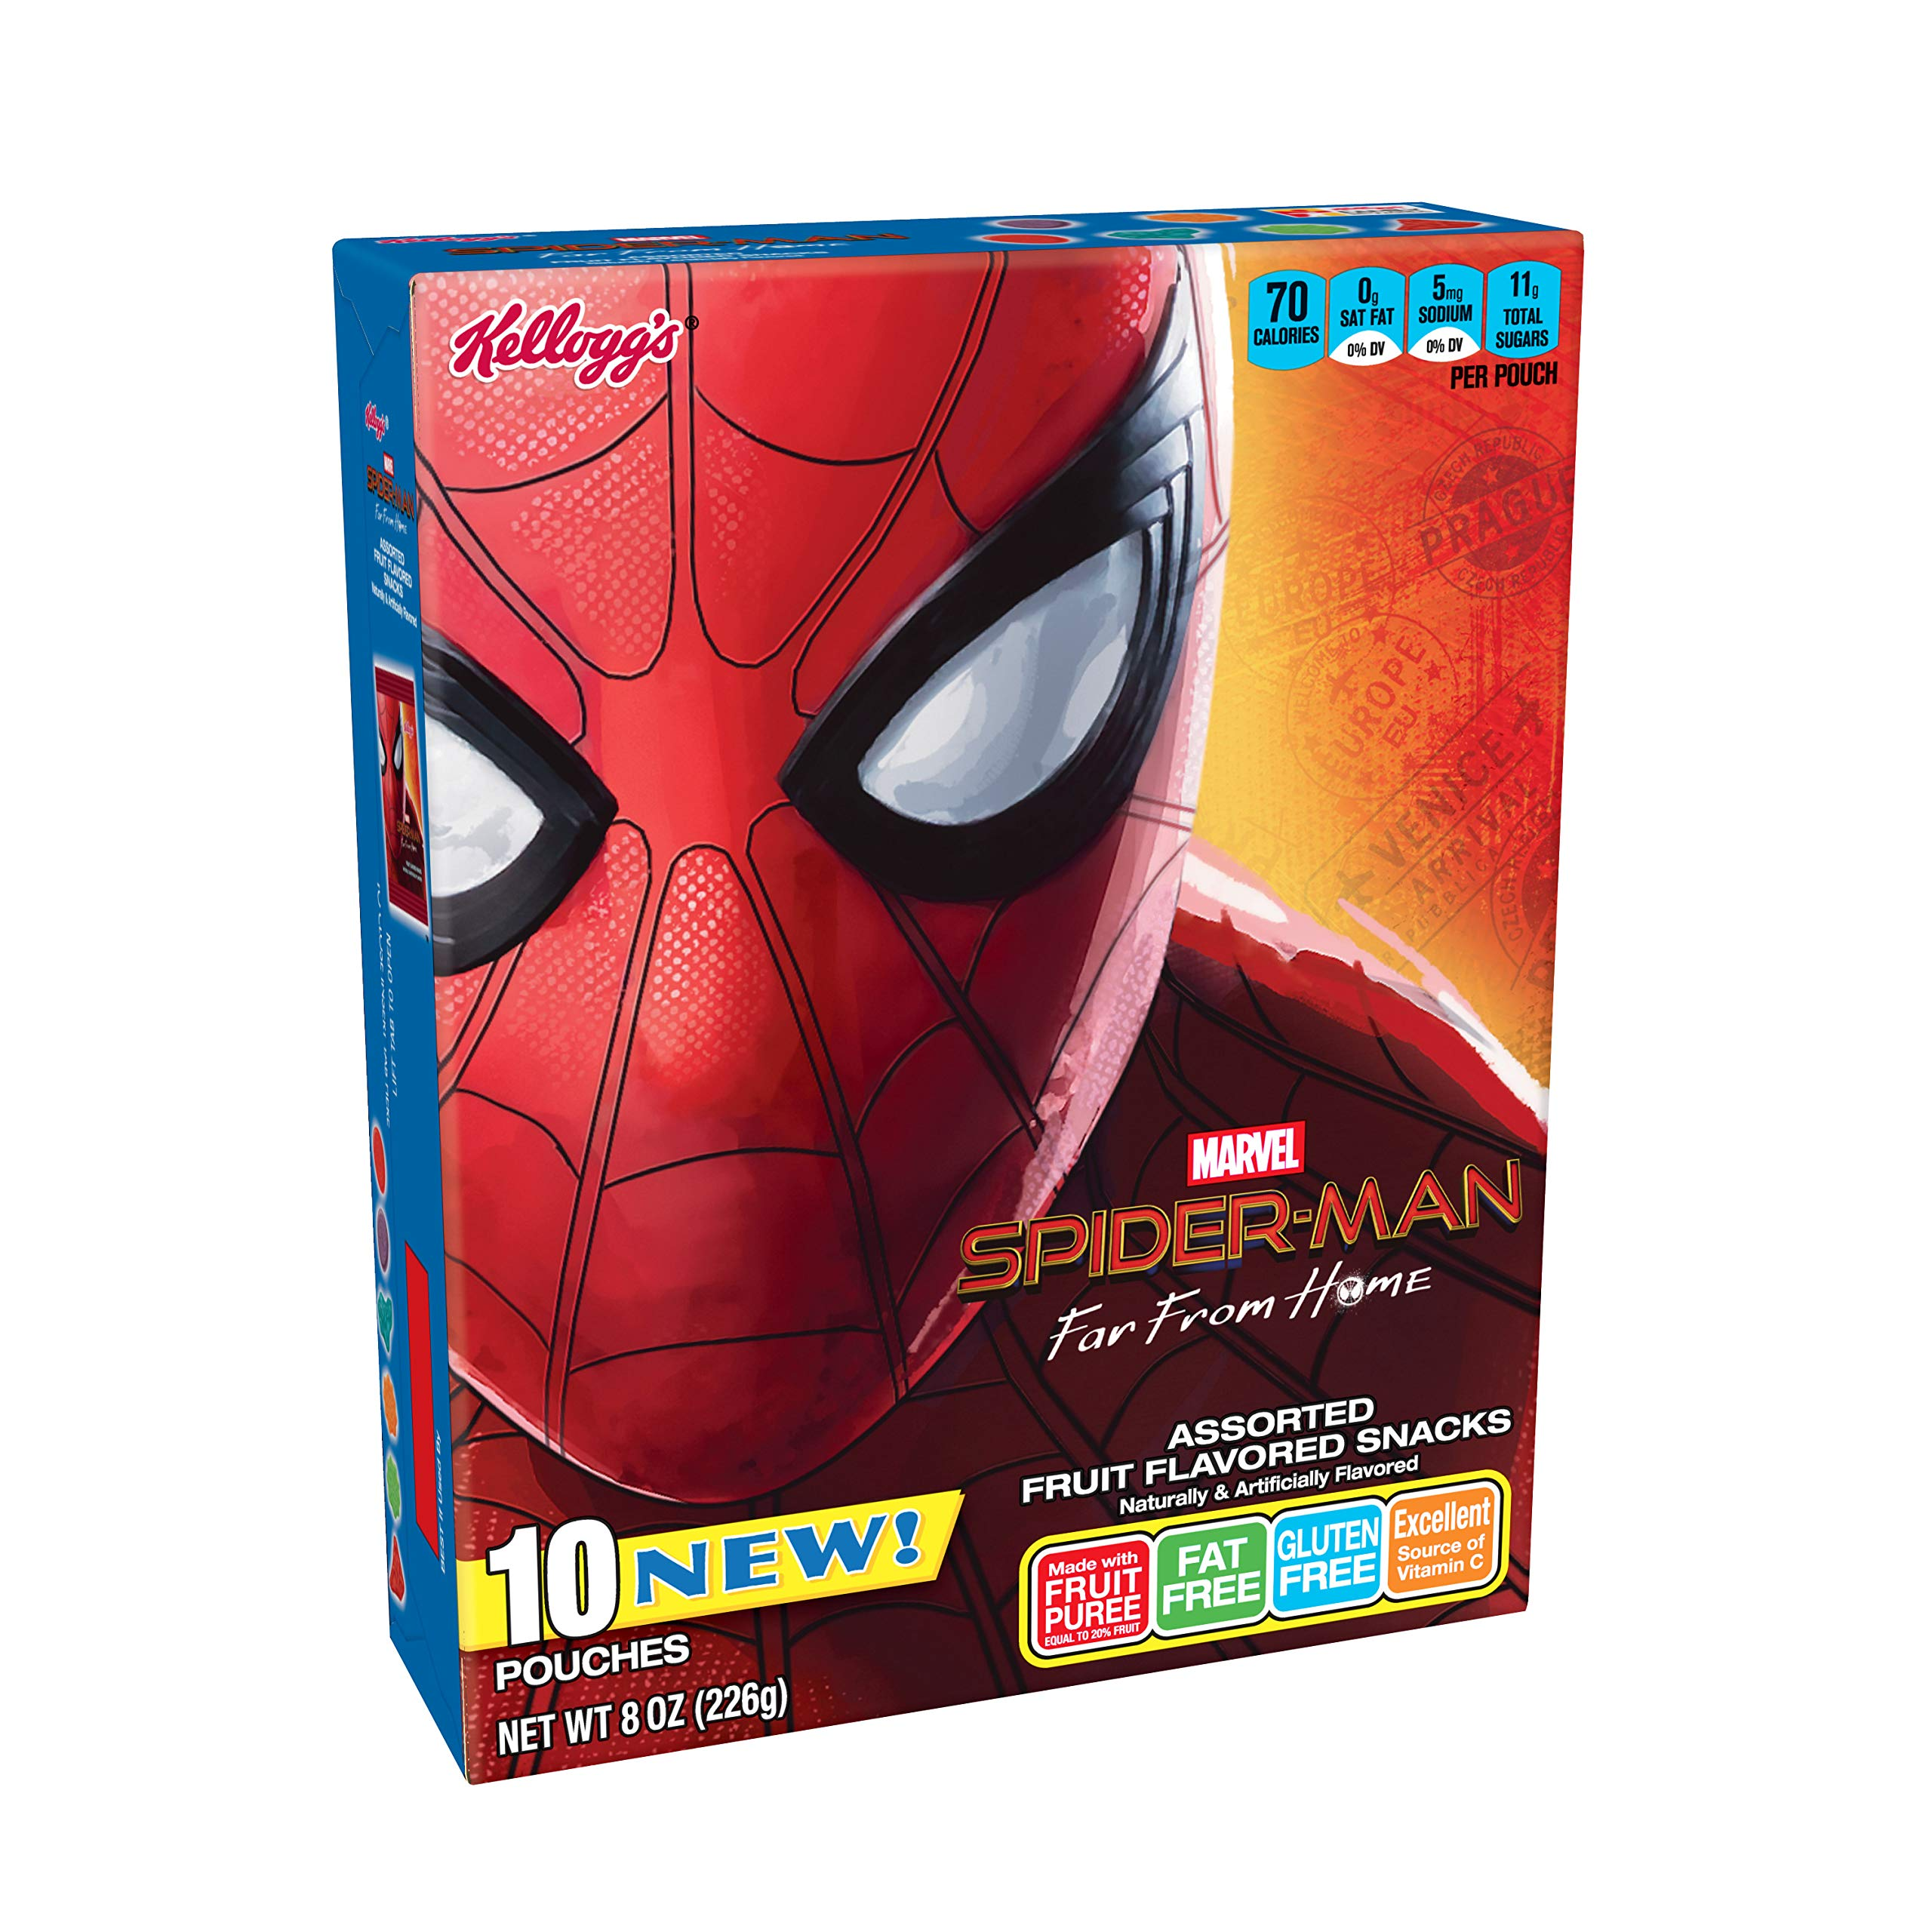 Spiderman, Fruit Flavored Snacks, Assorted Fruit Flavored, Gluten Free, Fat Free, 8 oz